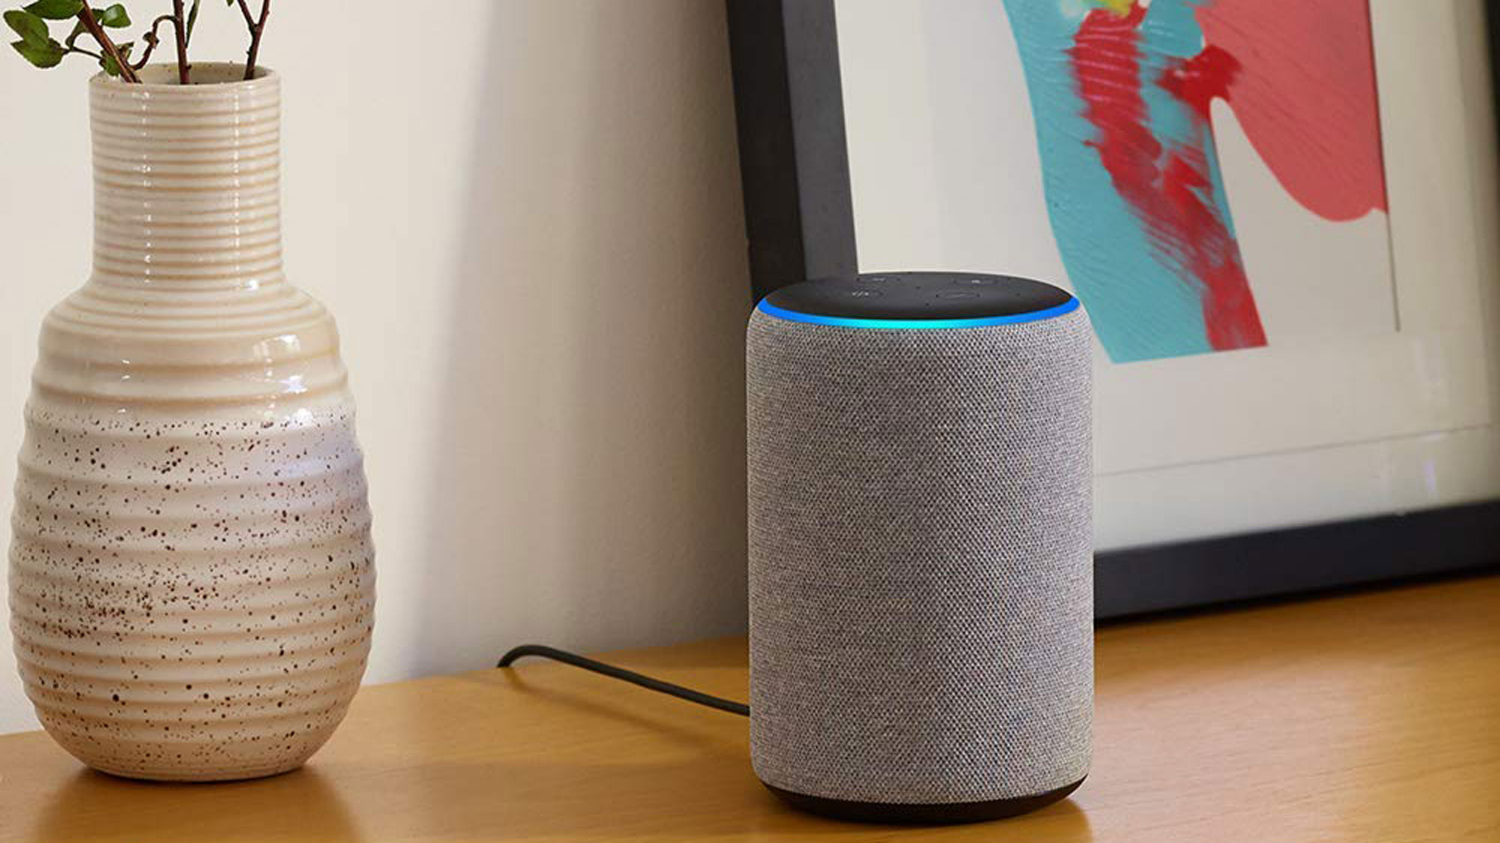 Why Is Alexa Flashing? Decoding Green, Yellow, Red and Purple Lights